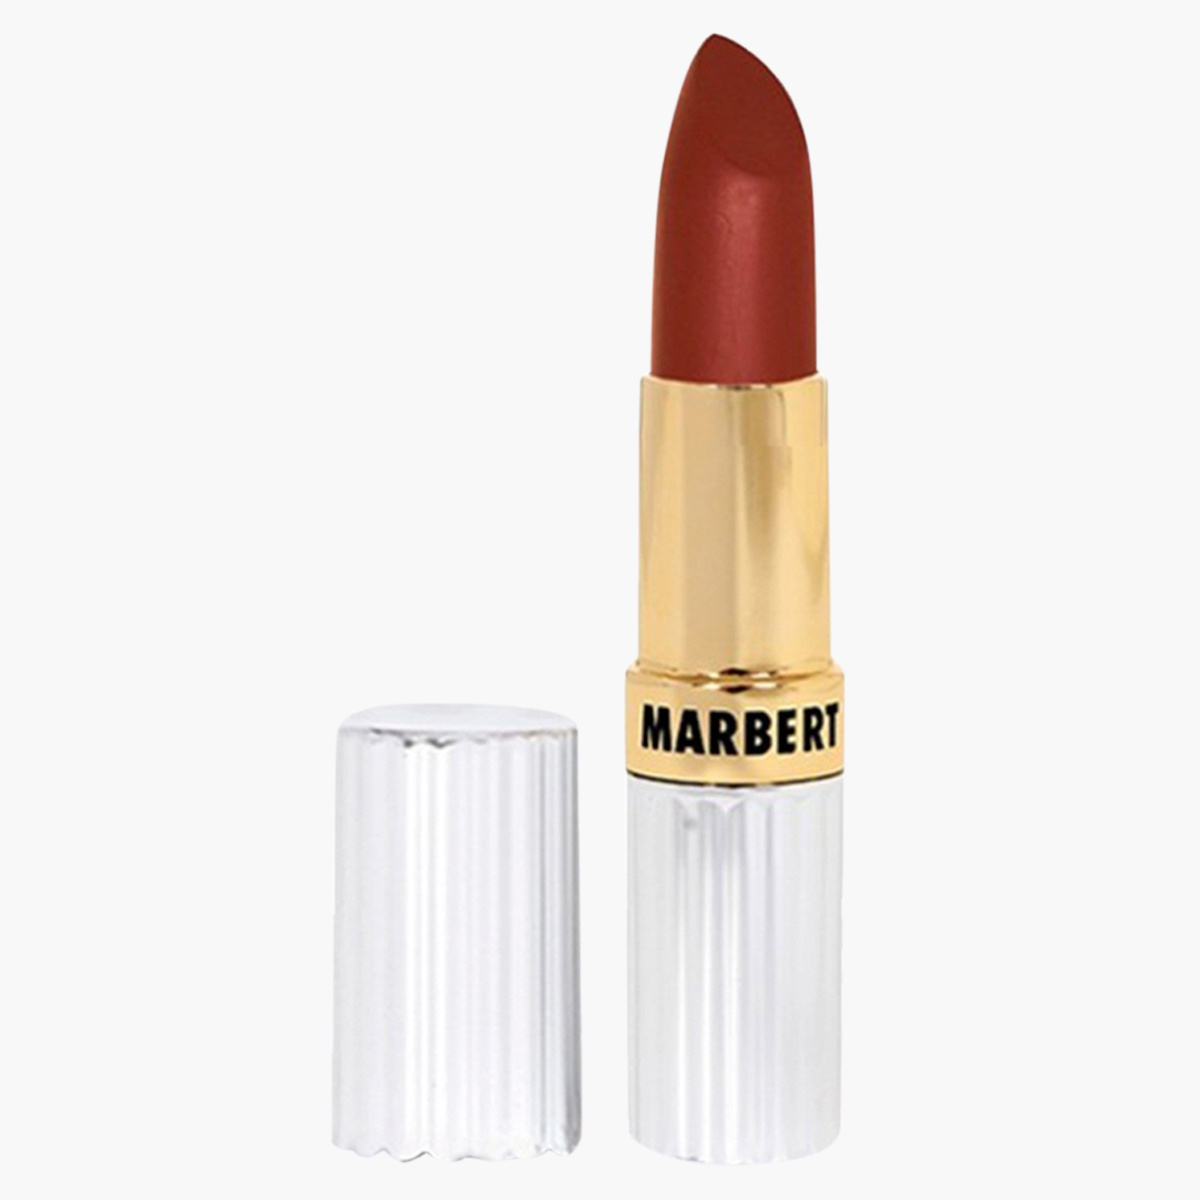 Marbert Timeless Lip Colour